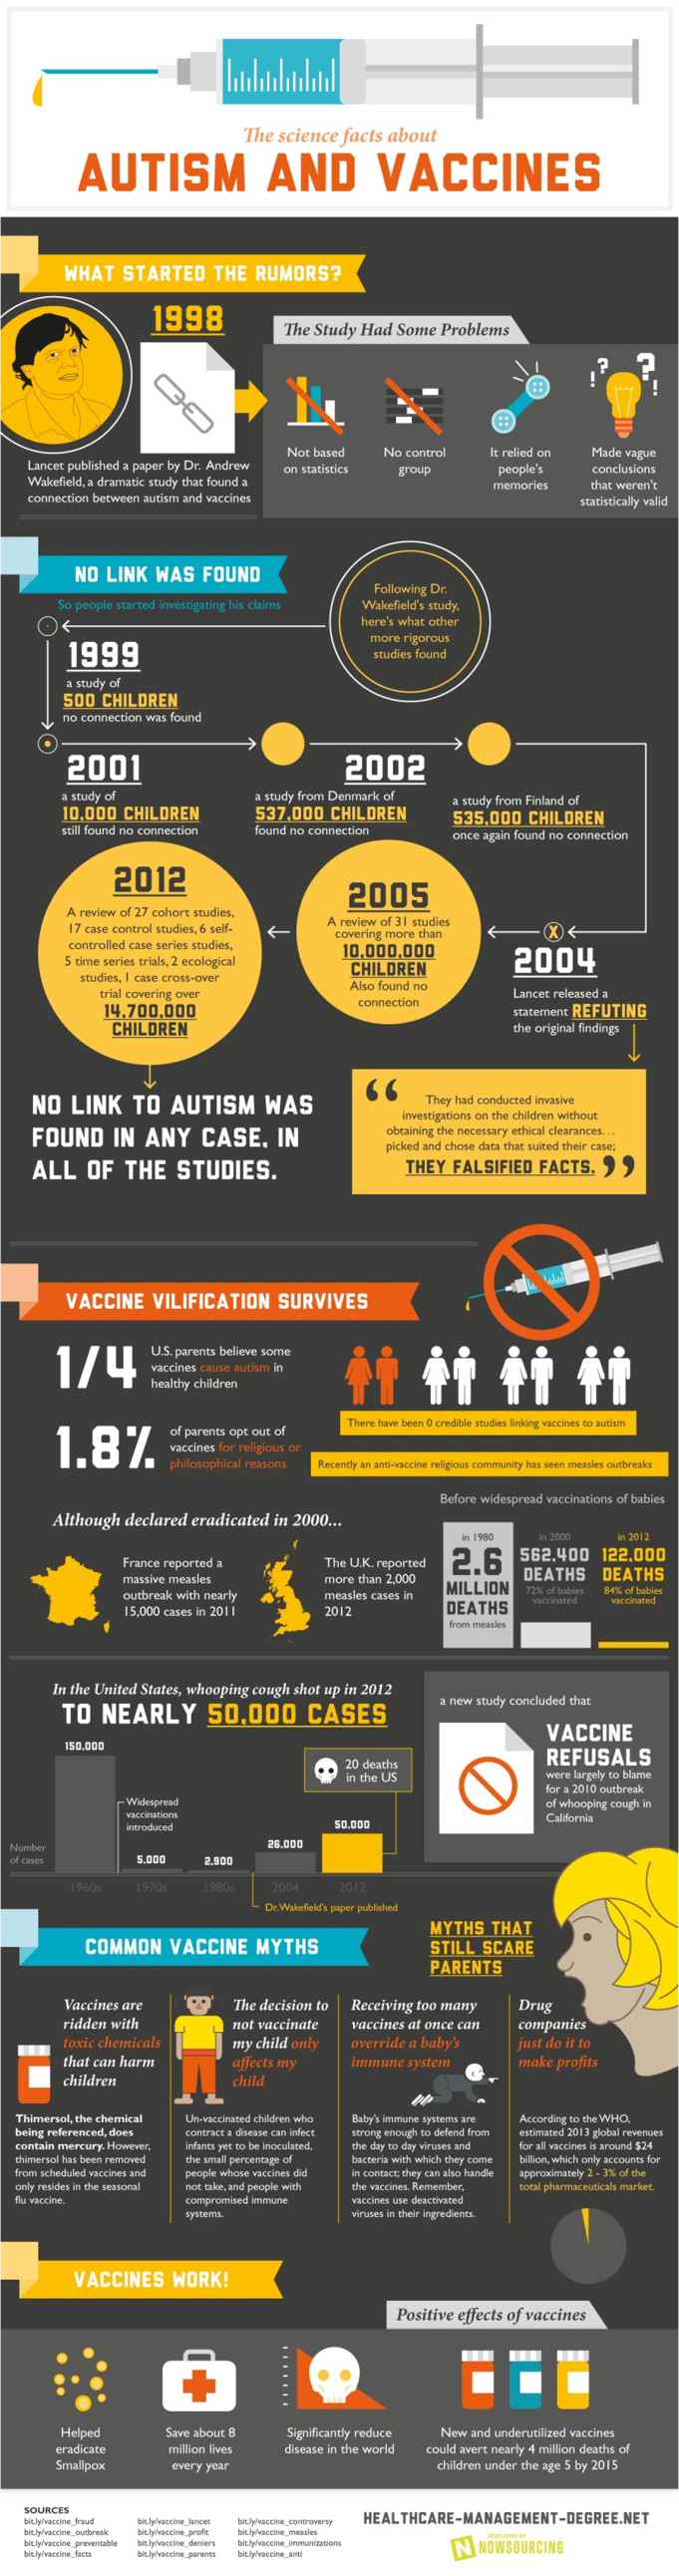 Autism and Vaccines